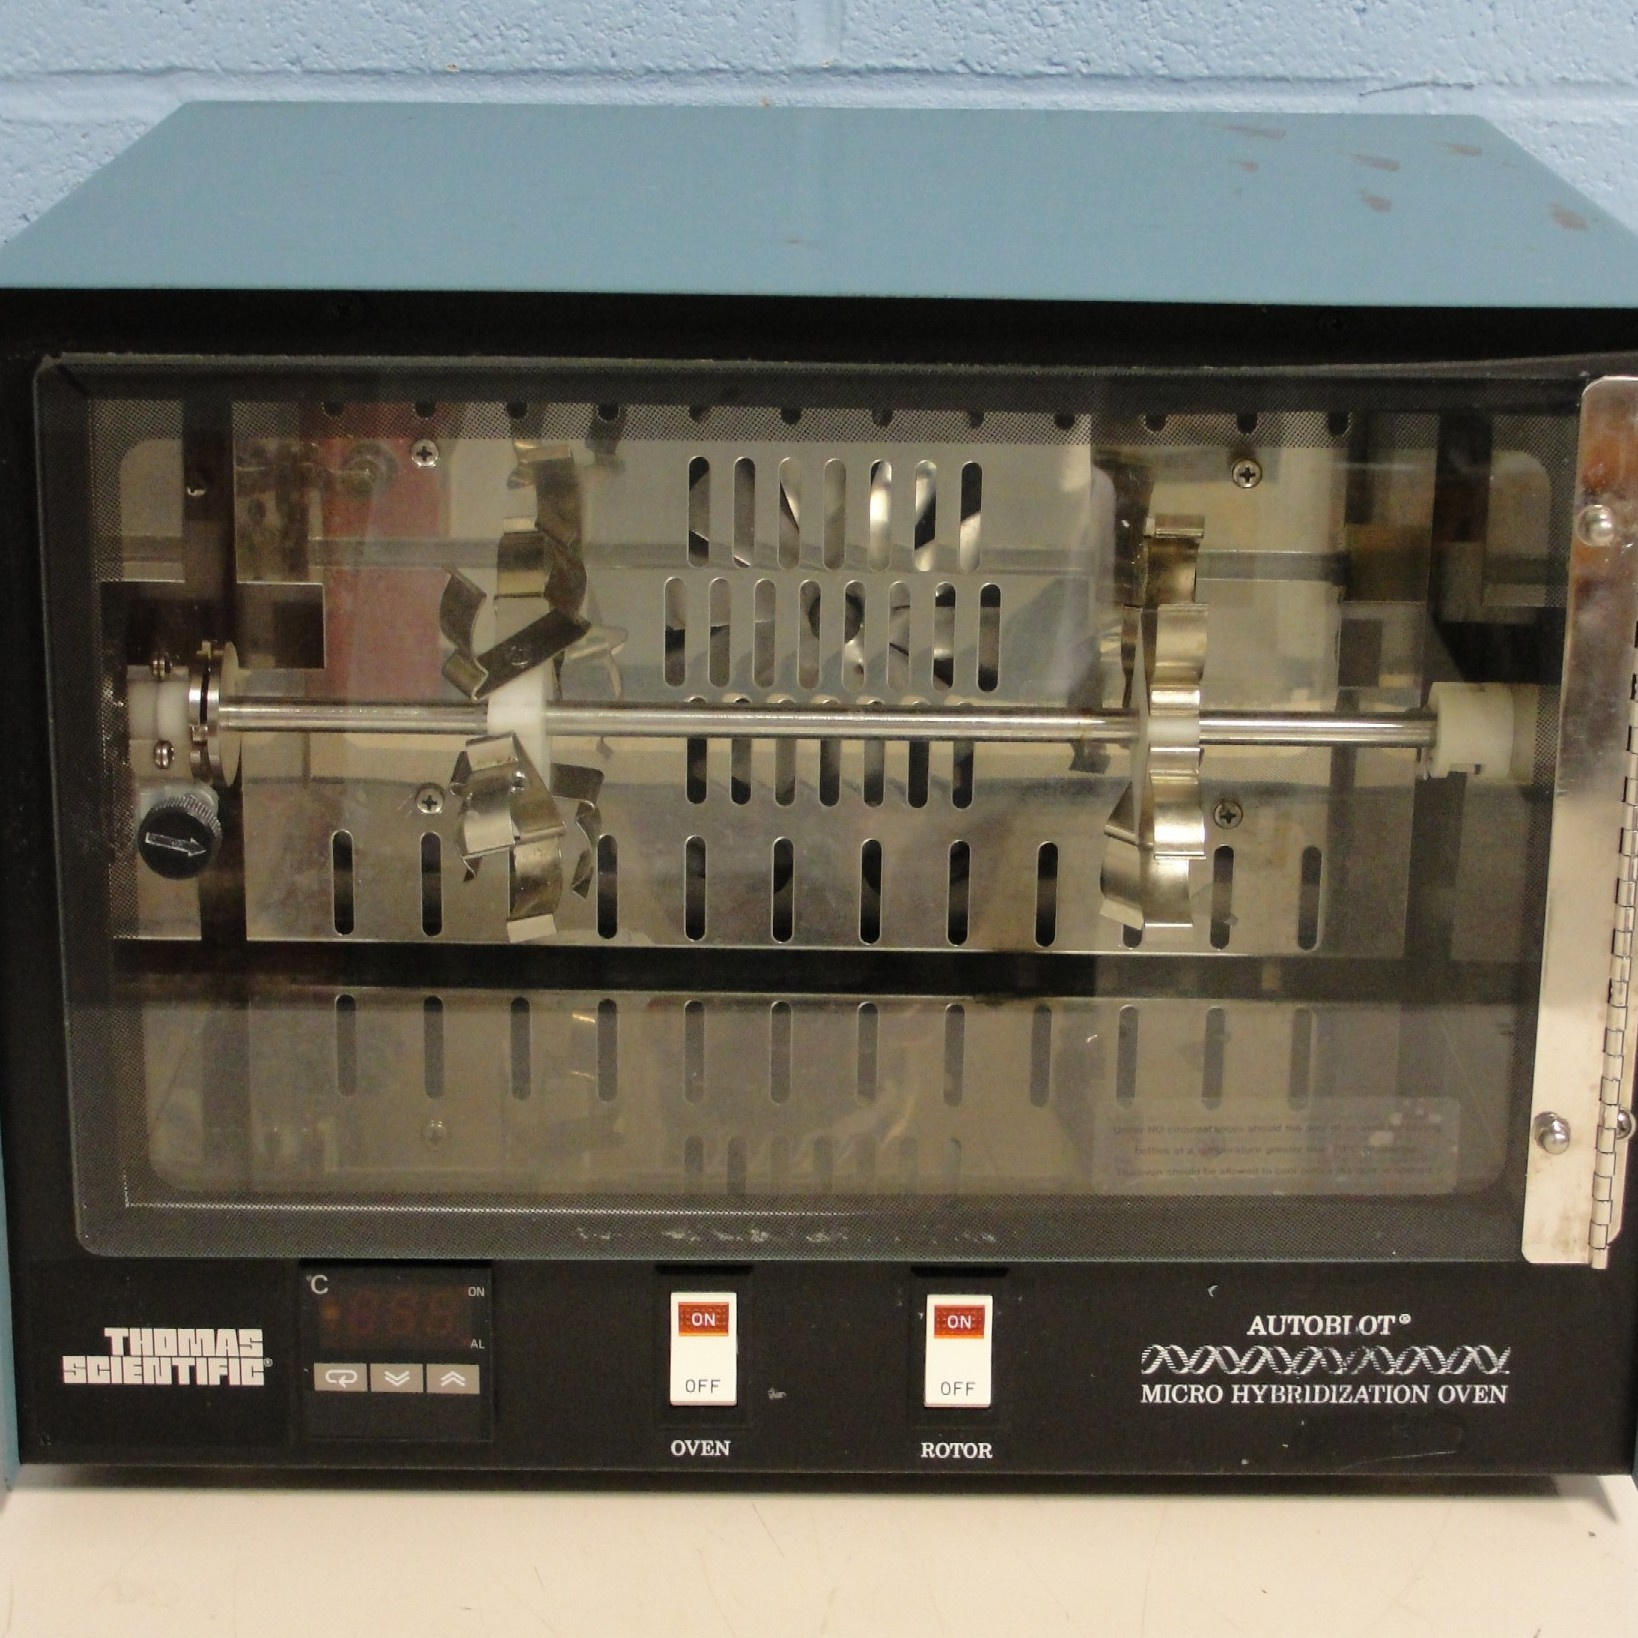 Thomas Scientific Autoblot Micro Hybridization Oven Image